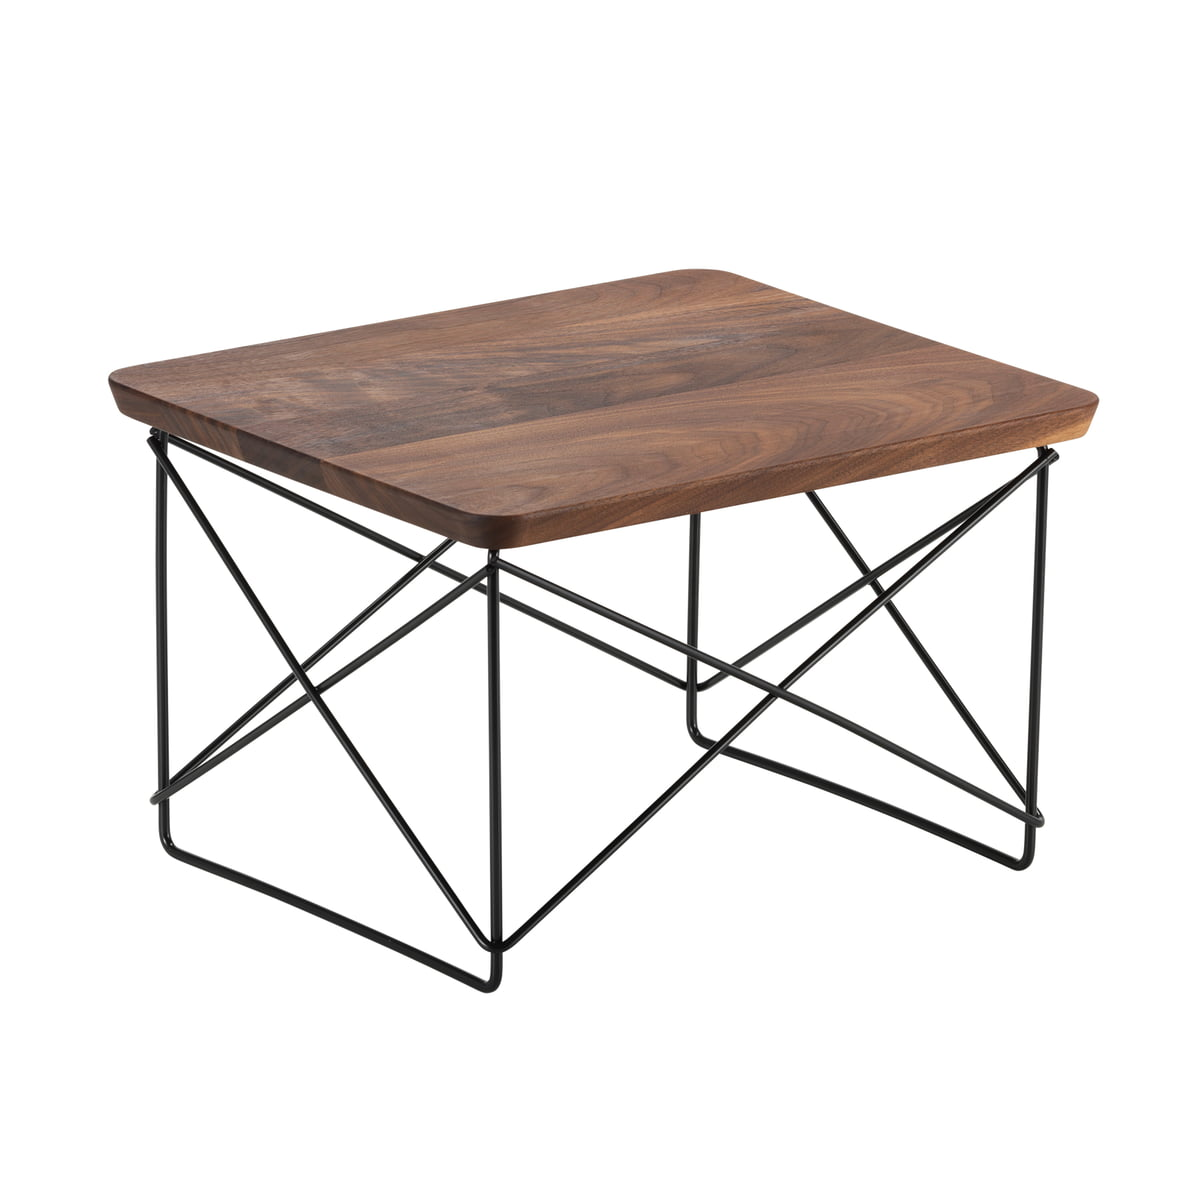 Vitra - Table Eames Occasional LTR noyer / basic dark